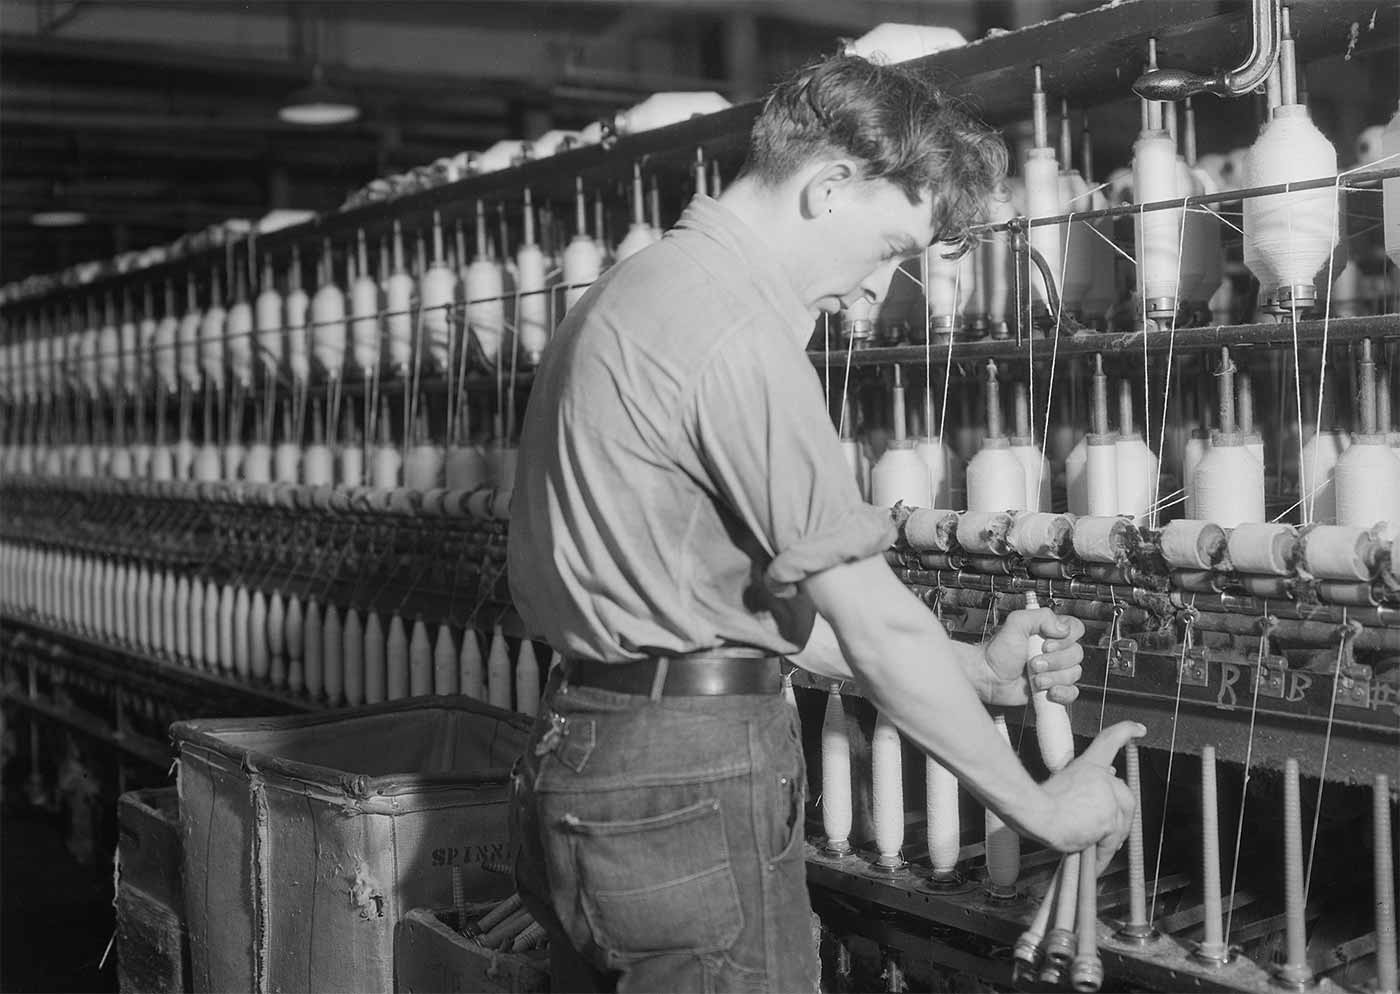 Man fixing machine at Millville Manufacturing Co.